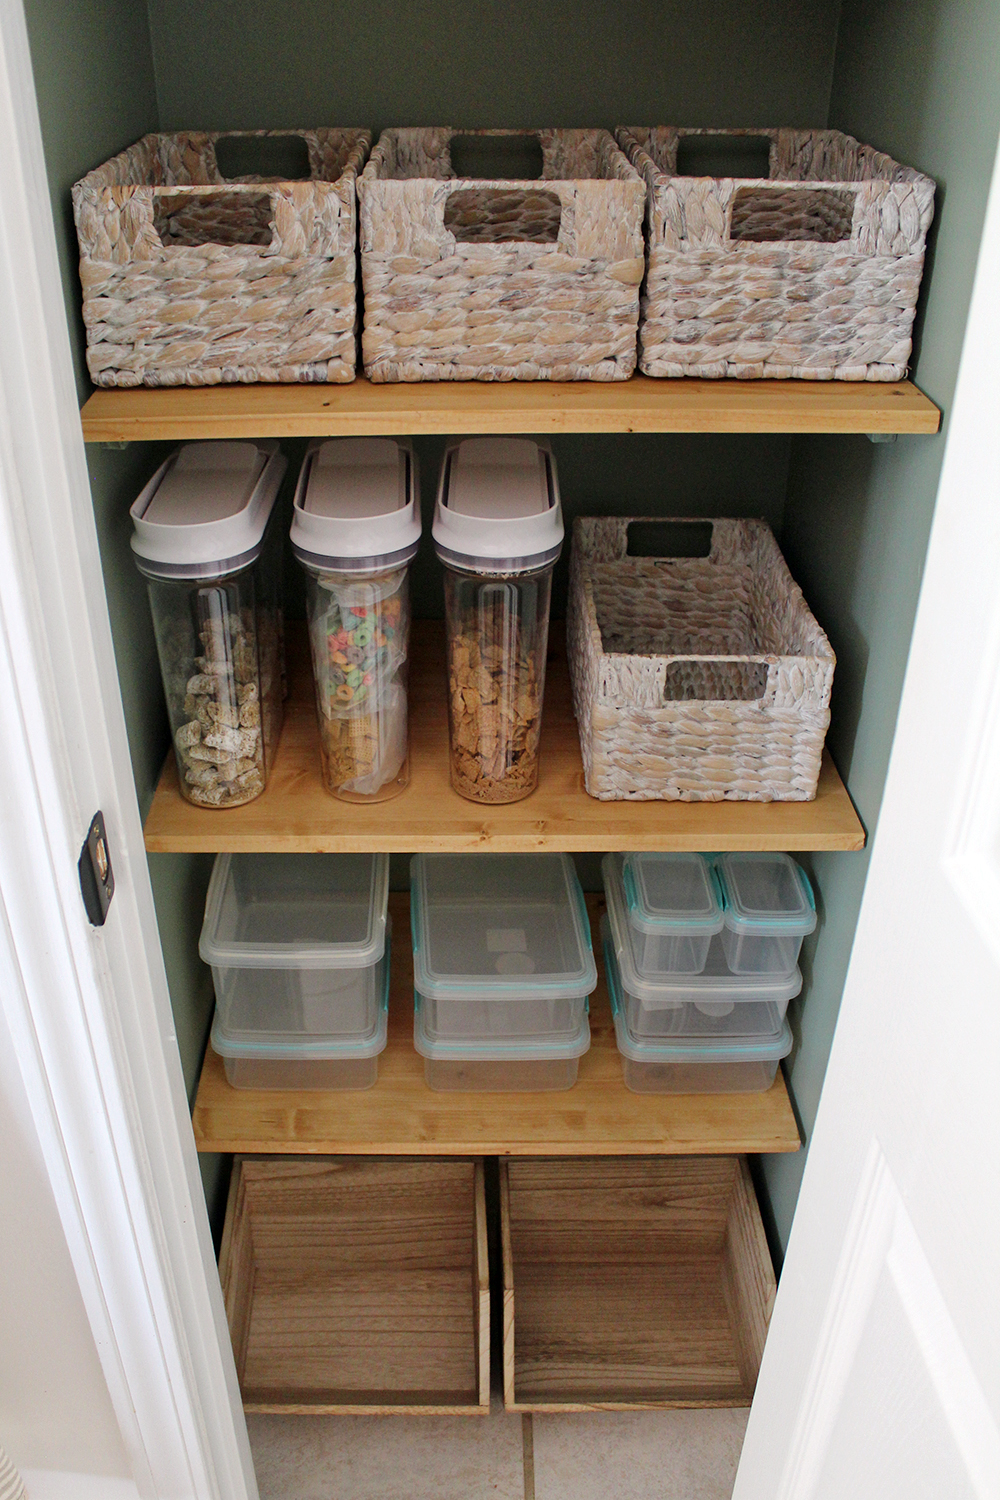 getting organized with new supplies